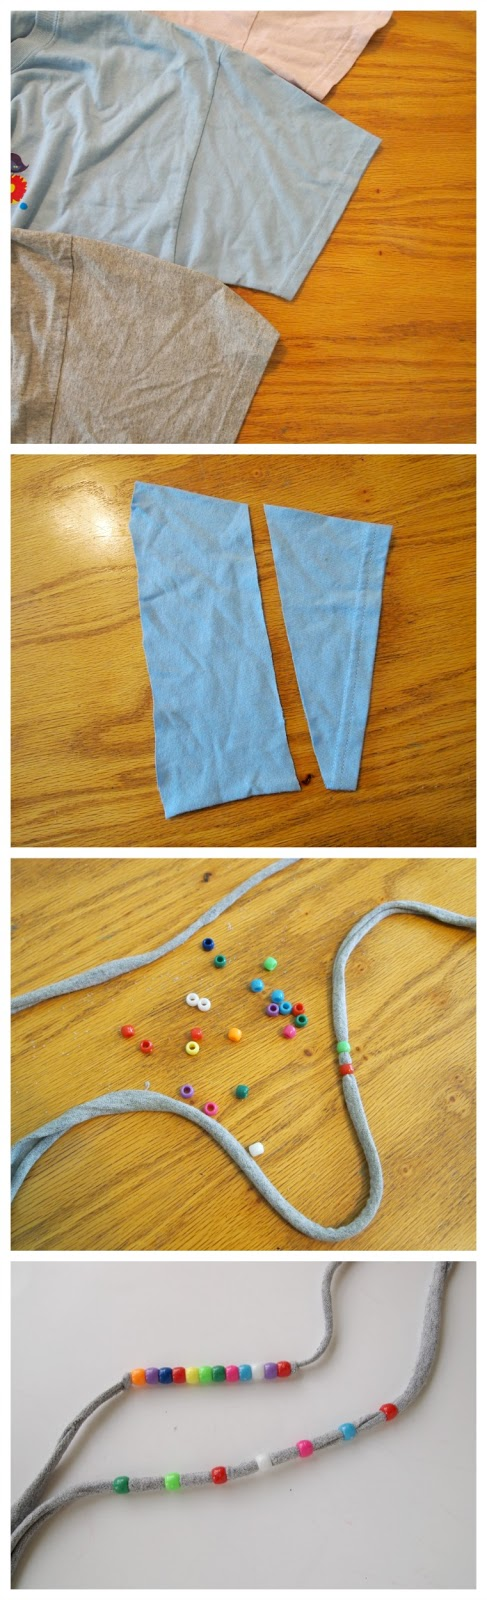 Use old t-shirts and pony beads to create a fun colorful headband for summer!